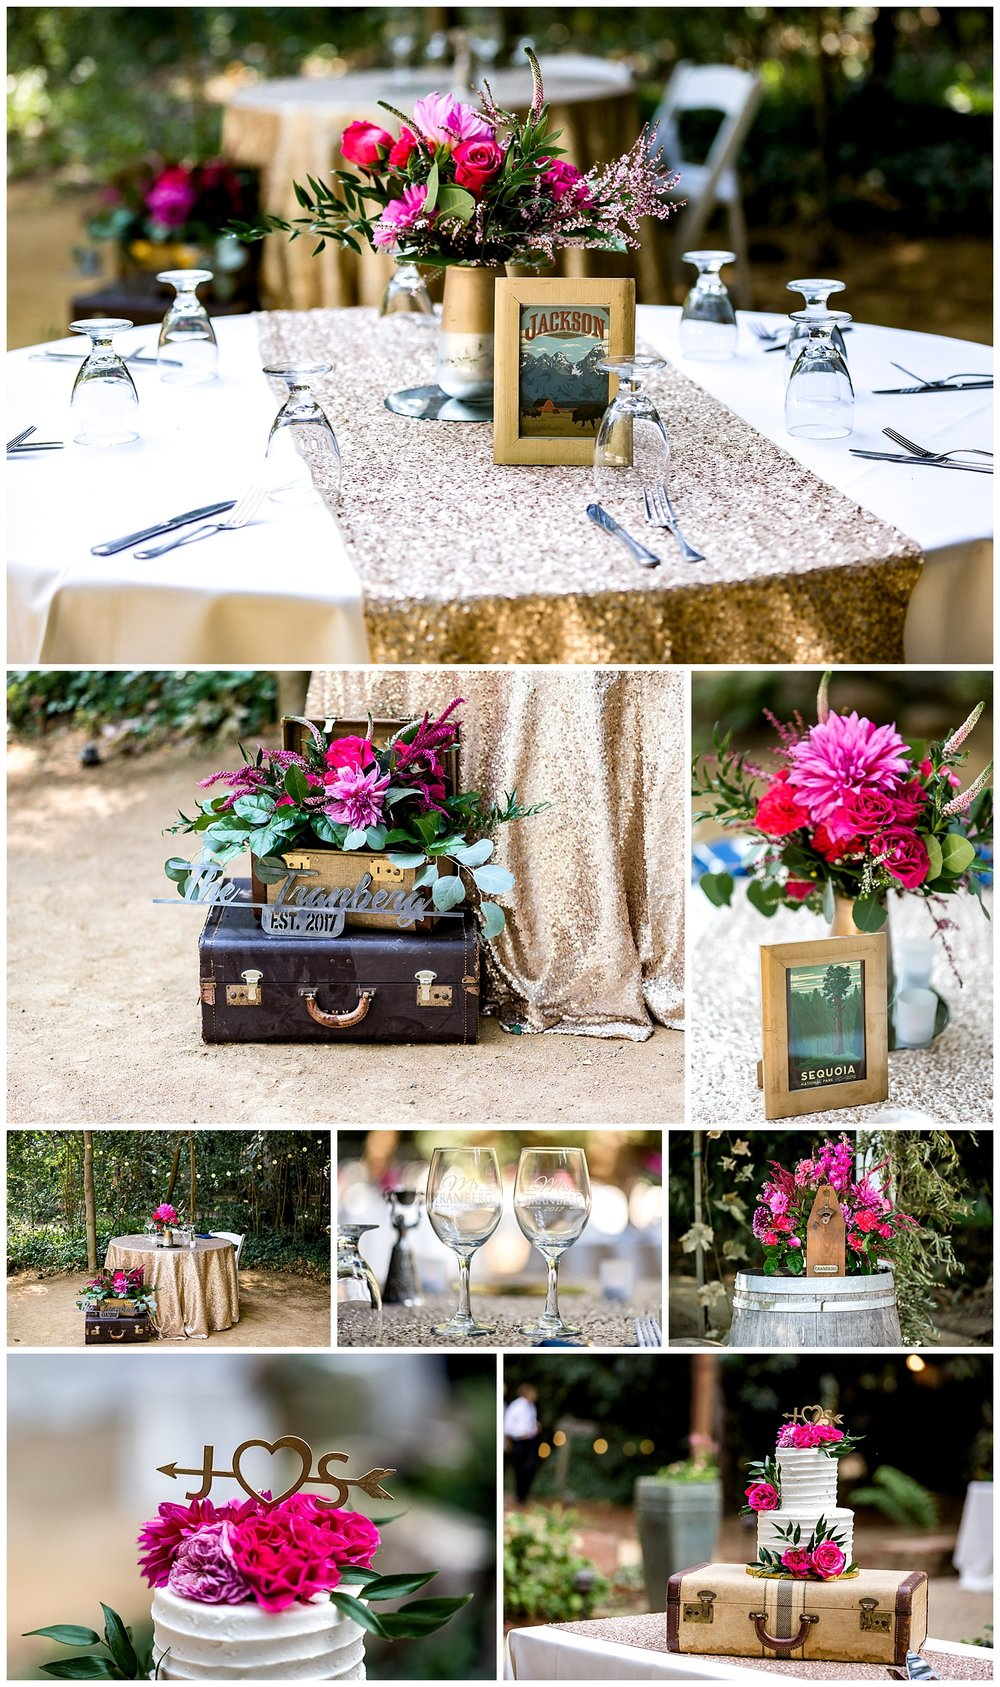 gale-vineyards-wedding_the-530-bride-js